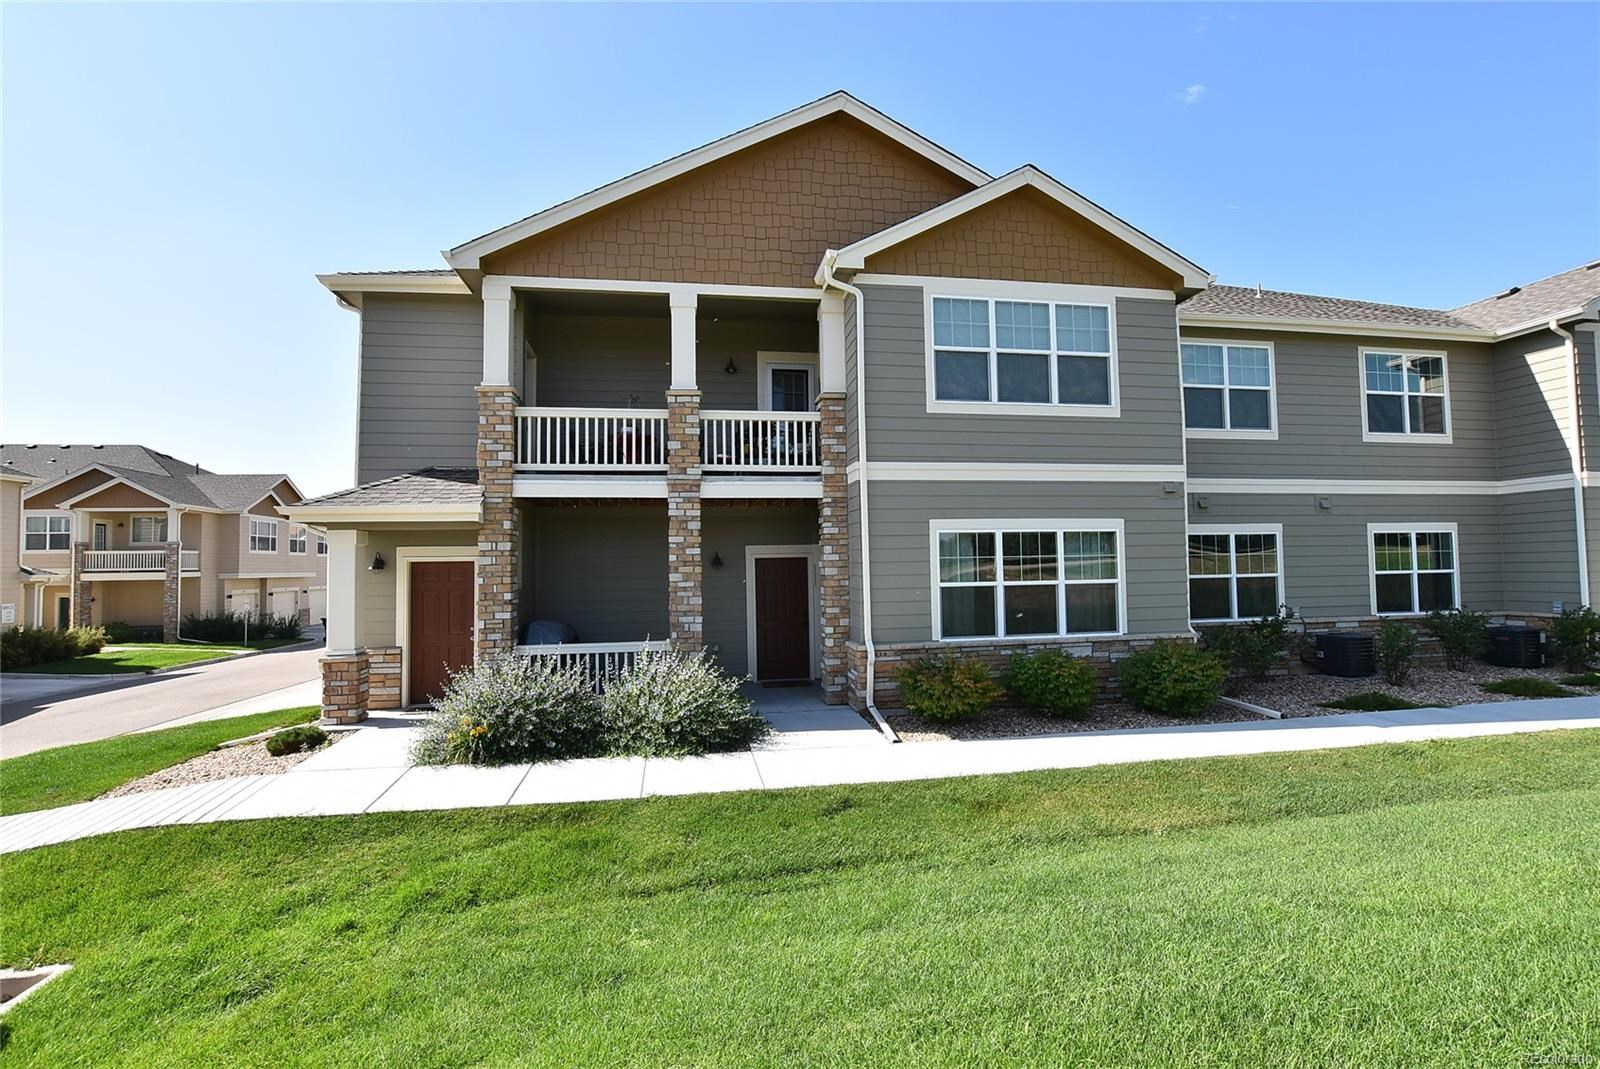 MLS# 5772080 - 1 - 6915 W 3rd Street #111, Greeley, CO 80634